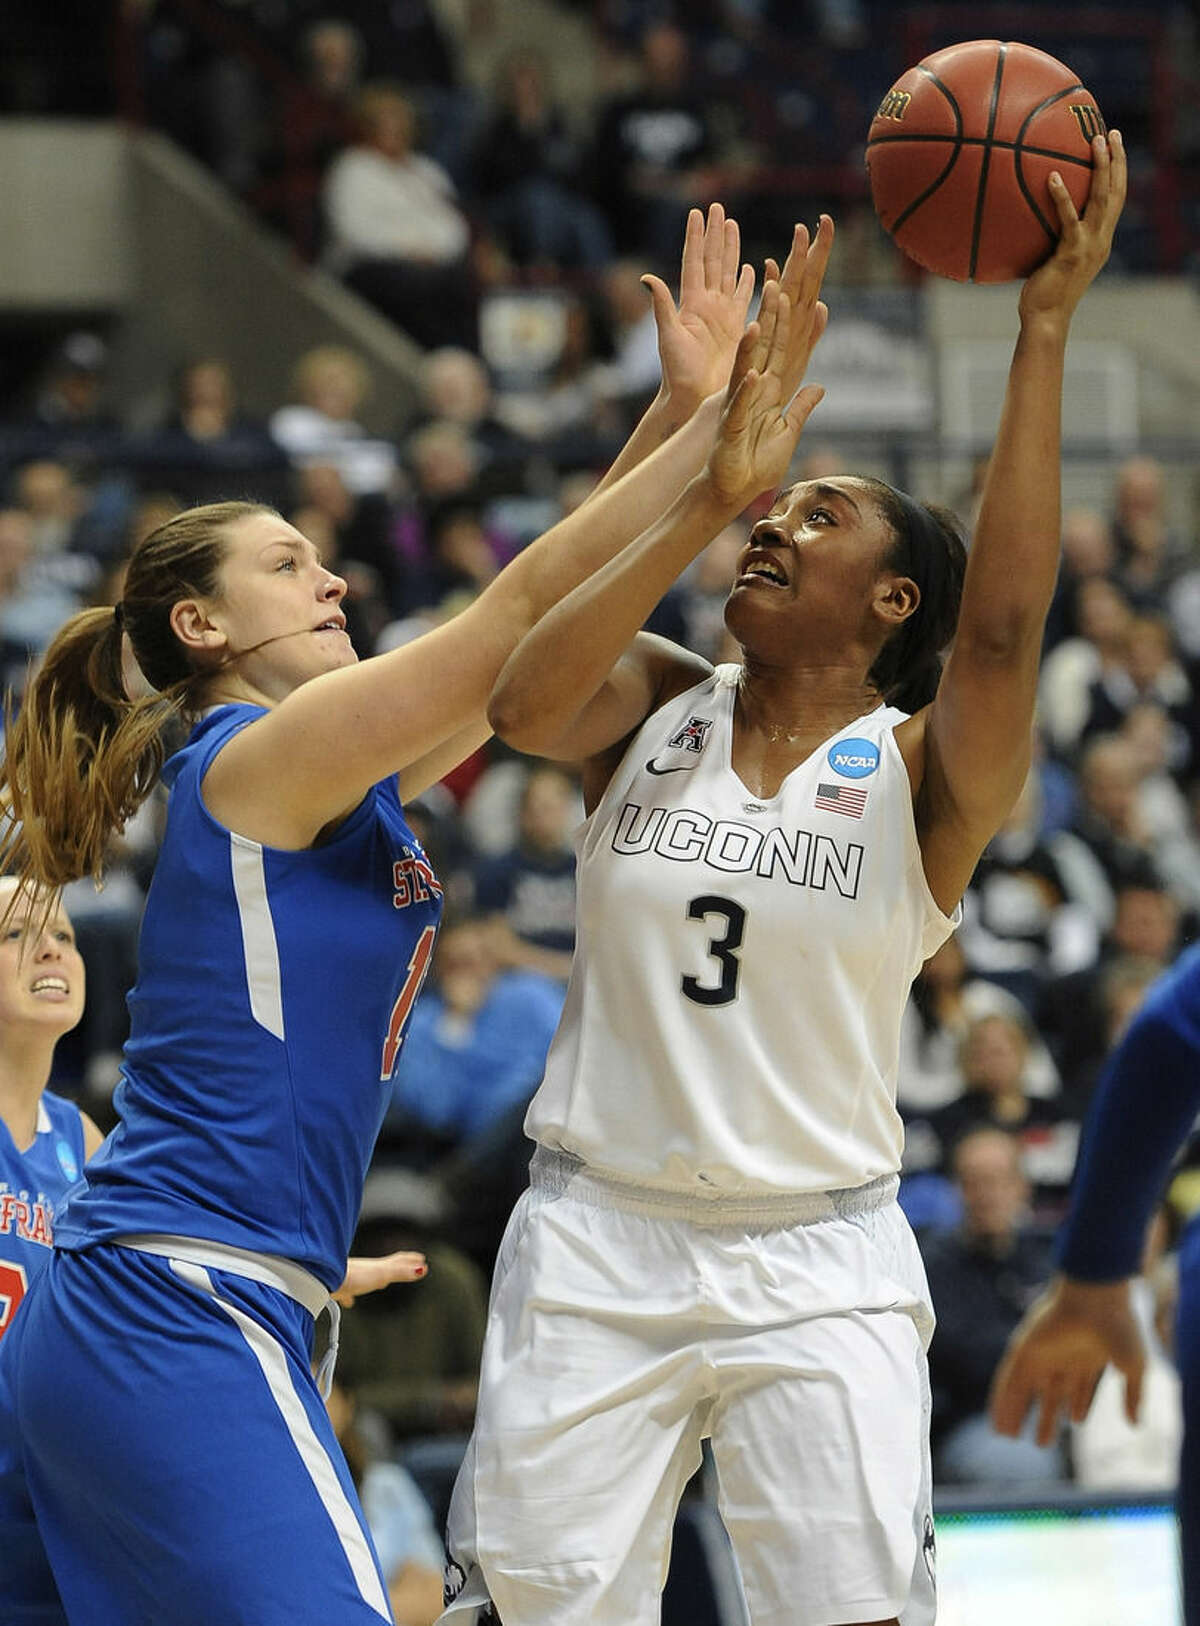 Connecticut's Morgan Tuck, right, shoots over St. Francis' Olivia Levey , left, during the second half of a women's college basketball game in the first round of the NCAA tournament, Saturday, March 21, 2015, in Storrs, Conn. (AP Photo/Jessica Hill)